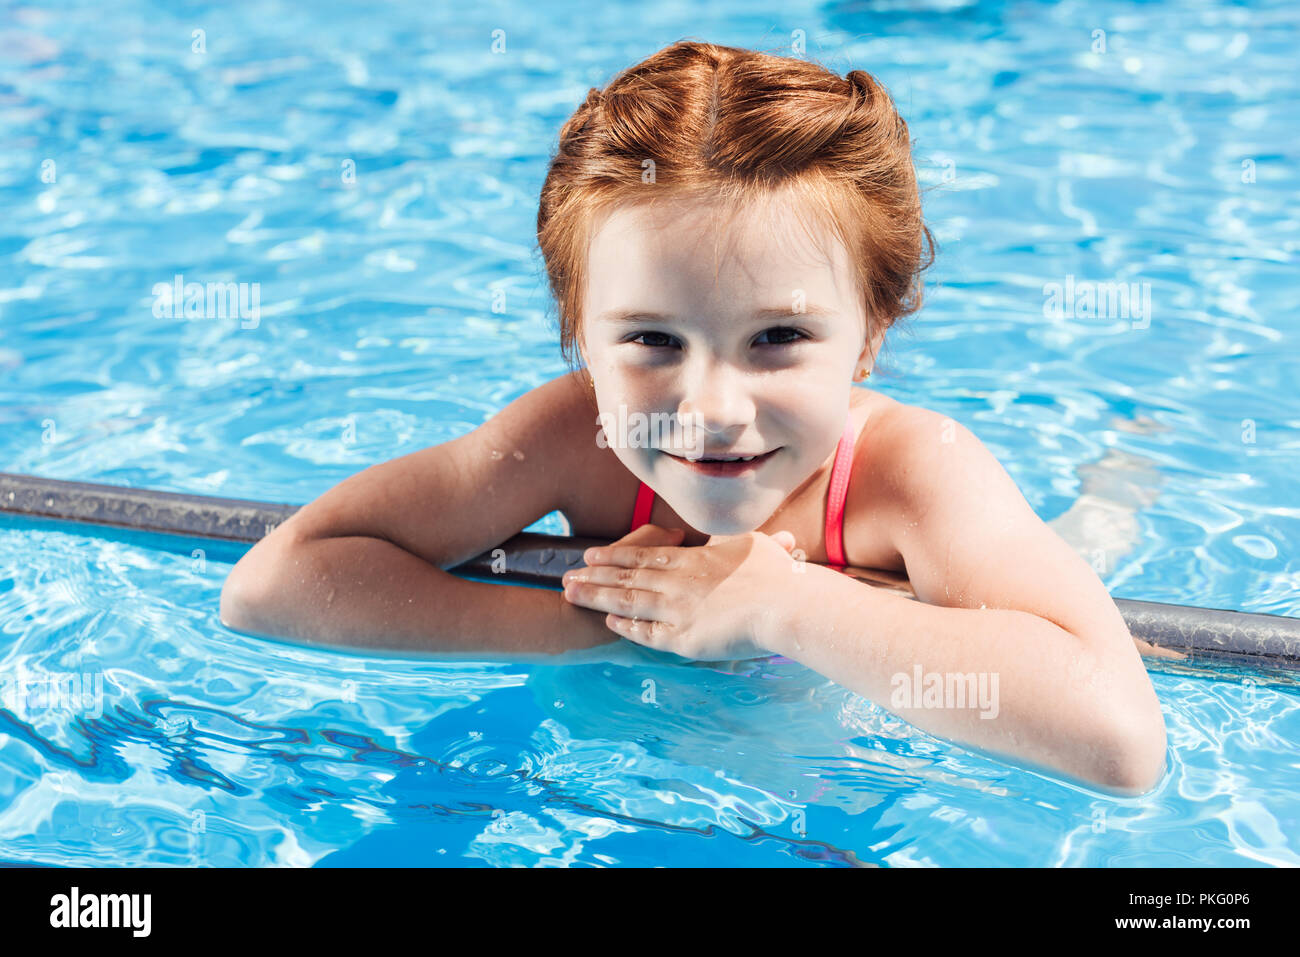 close-up portrait of happy little child in bikini in swimming pool looking at camera - Stock Image